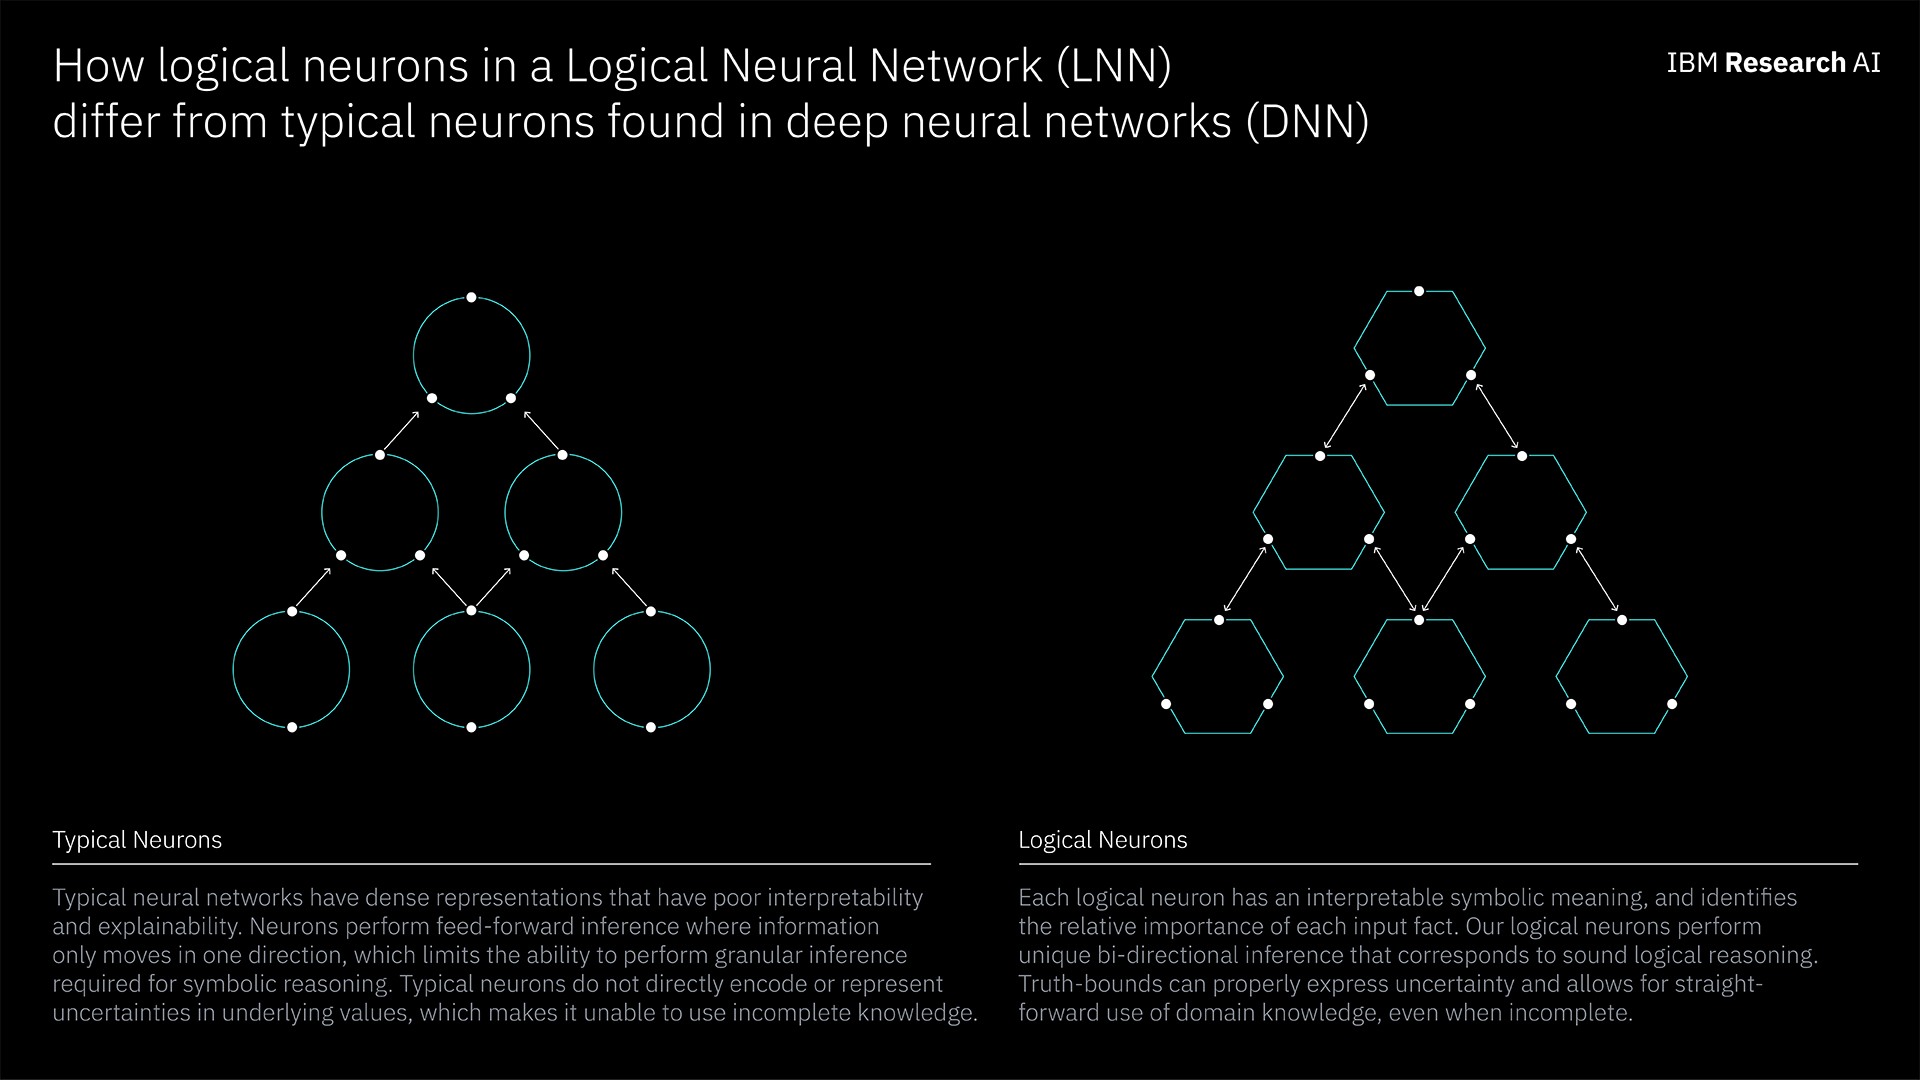 Figure 1. Illustrates the difference between typical neurons and logical neurons